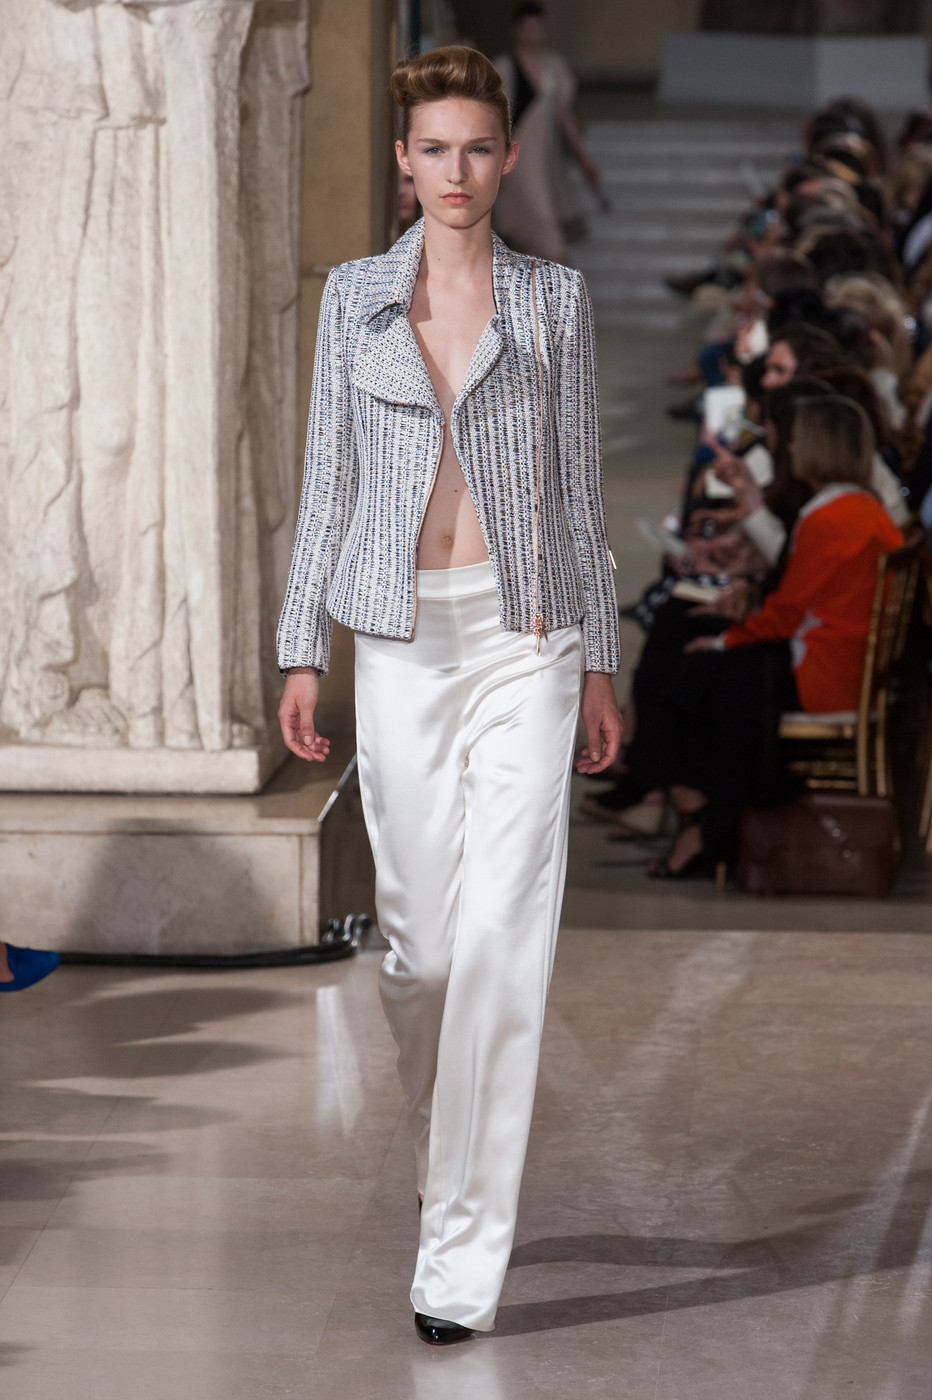 Bouchra Jarrar Haute Couture Fall-Winter 2013 / Lanvin new fashion designer via www.fashionedbylove.co.uk